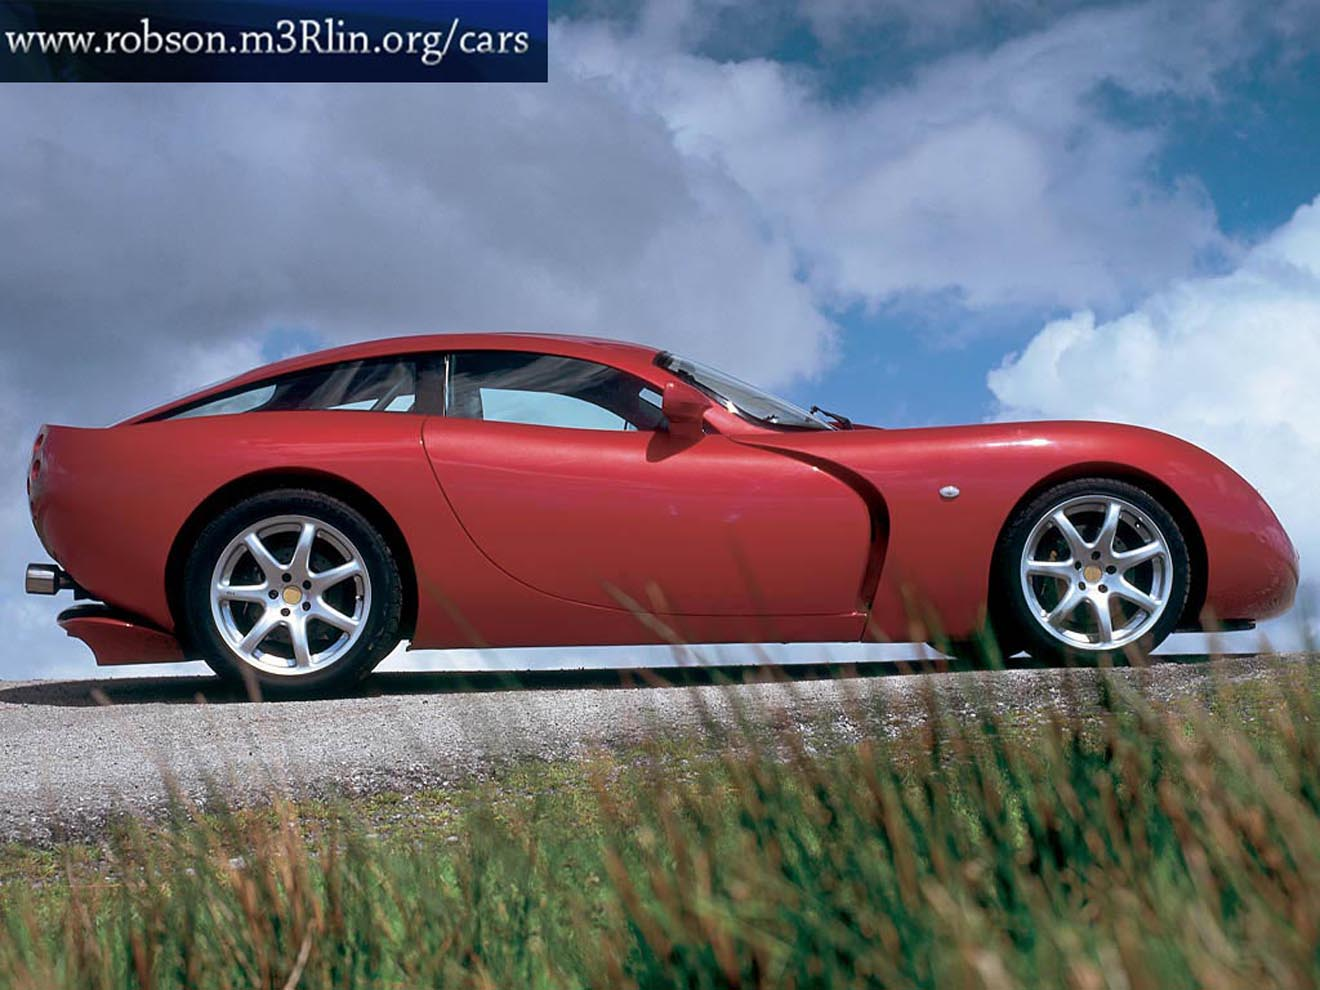 Tvr t440r photo - 8